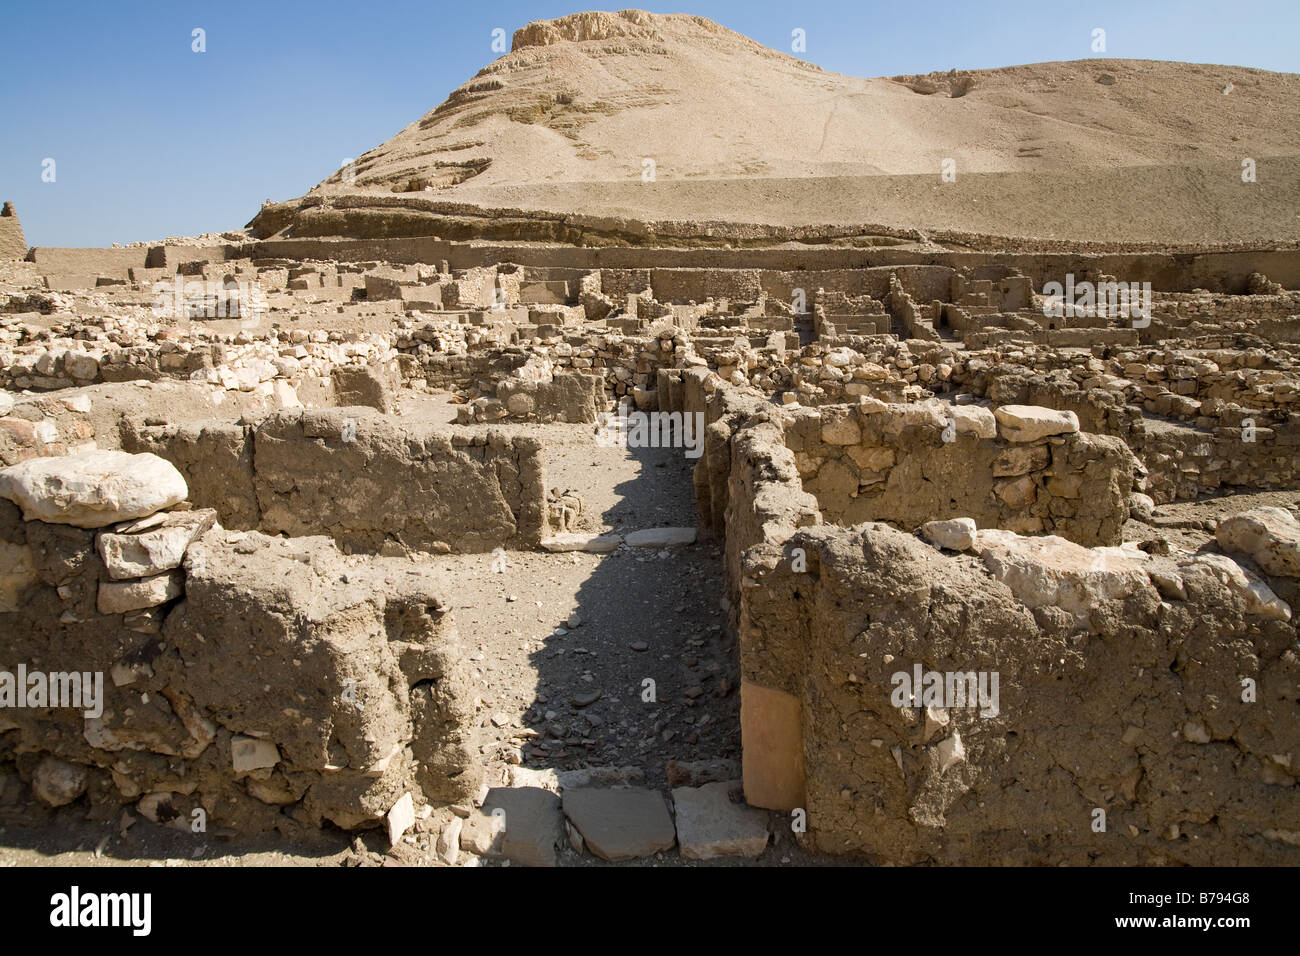 Deir el Medina: The Workers' Village on the West Bank Luxor, Egypt - Stock Image